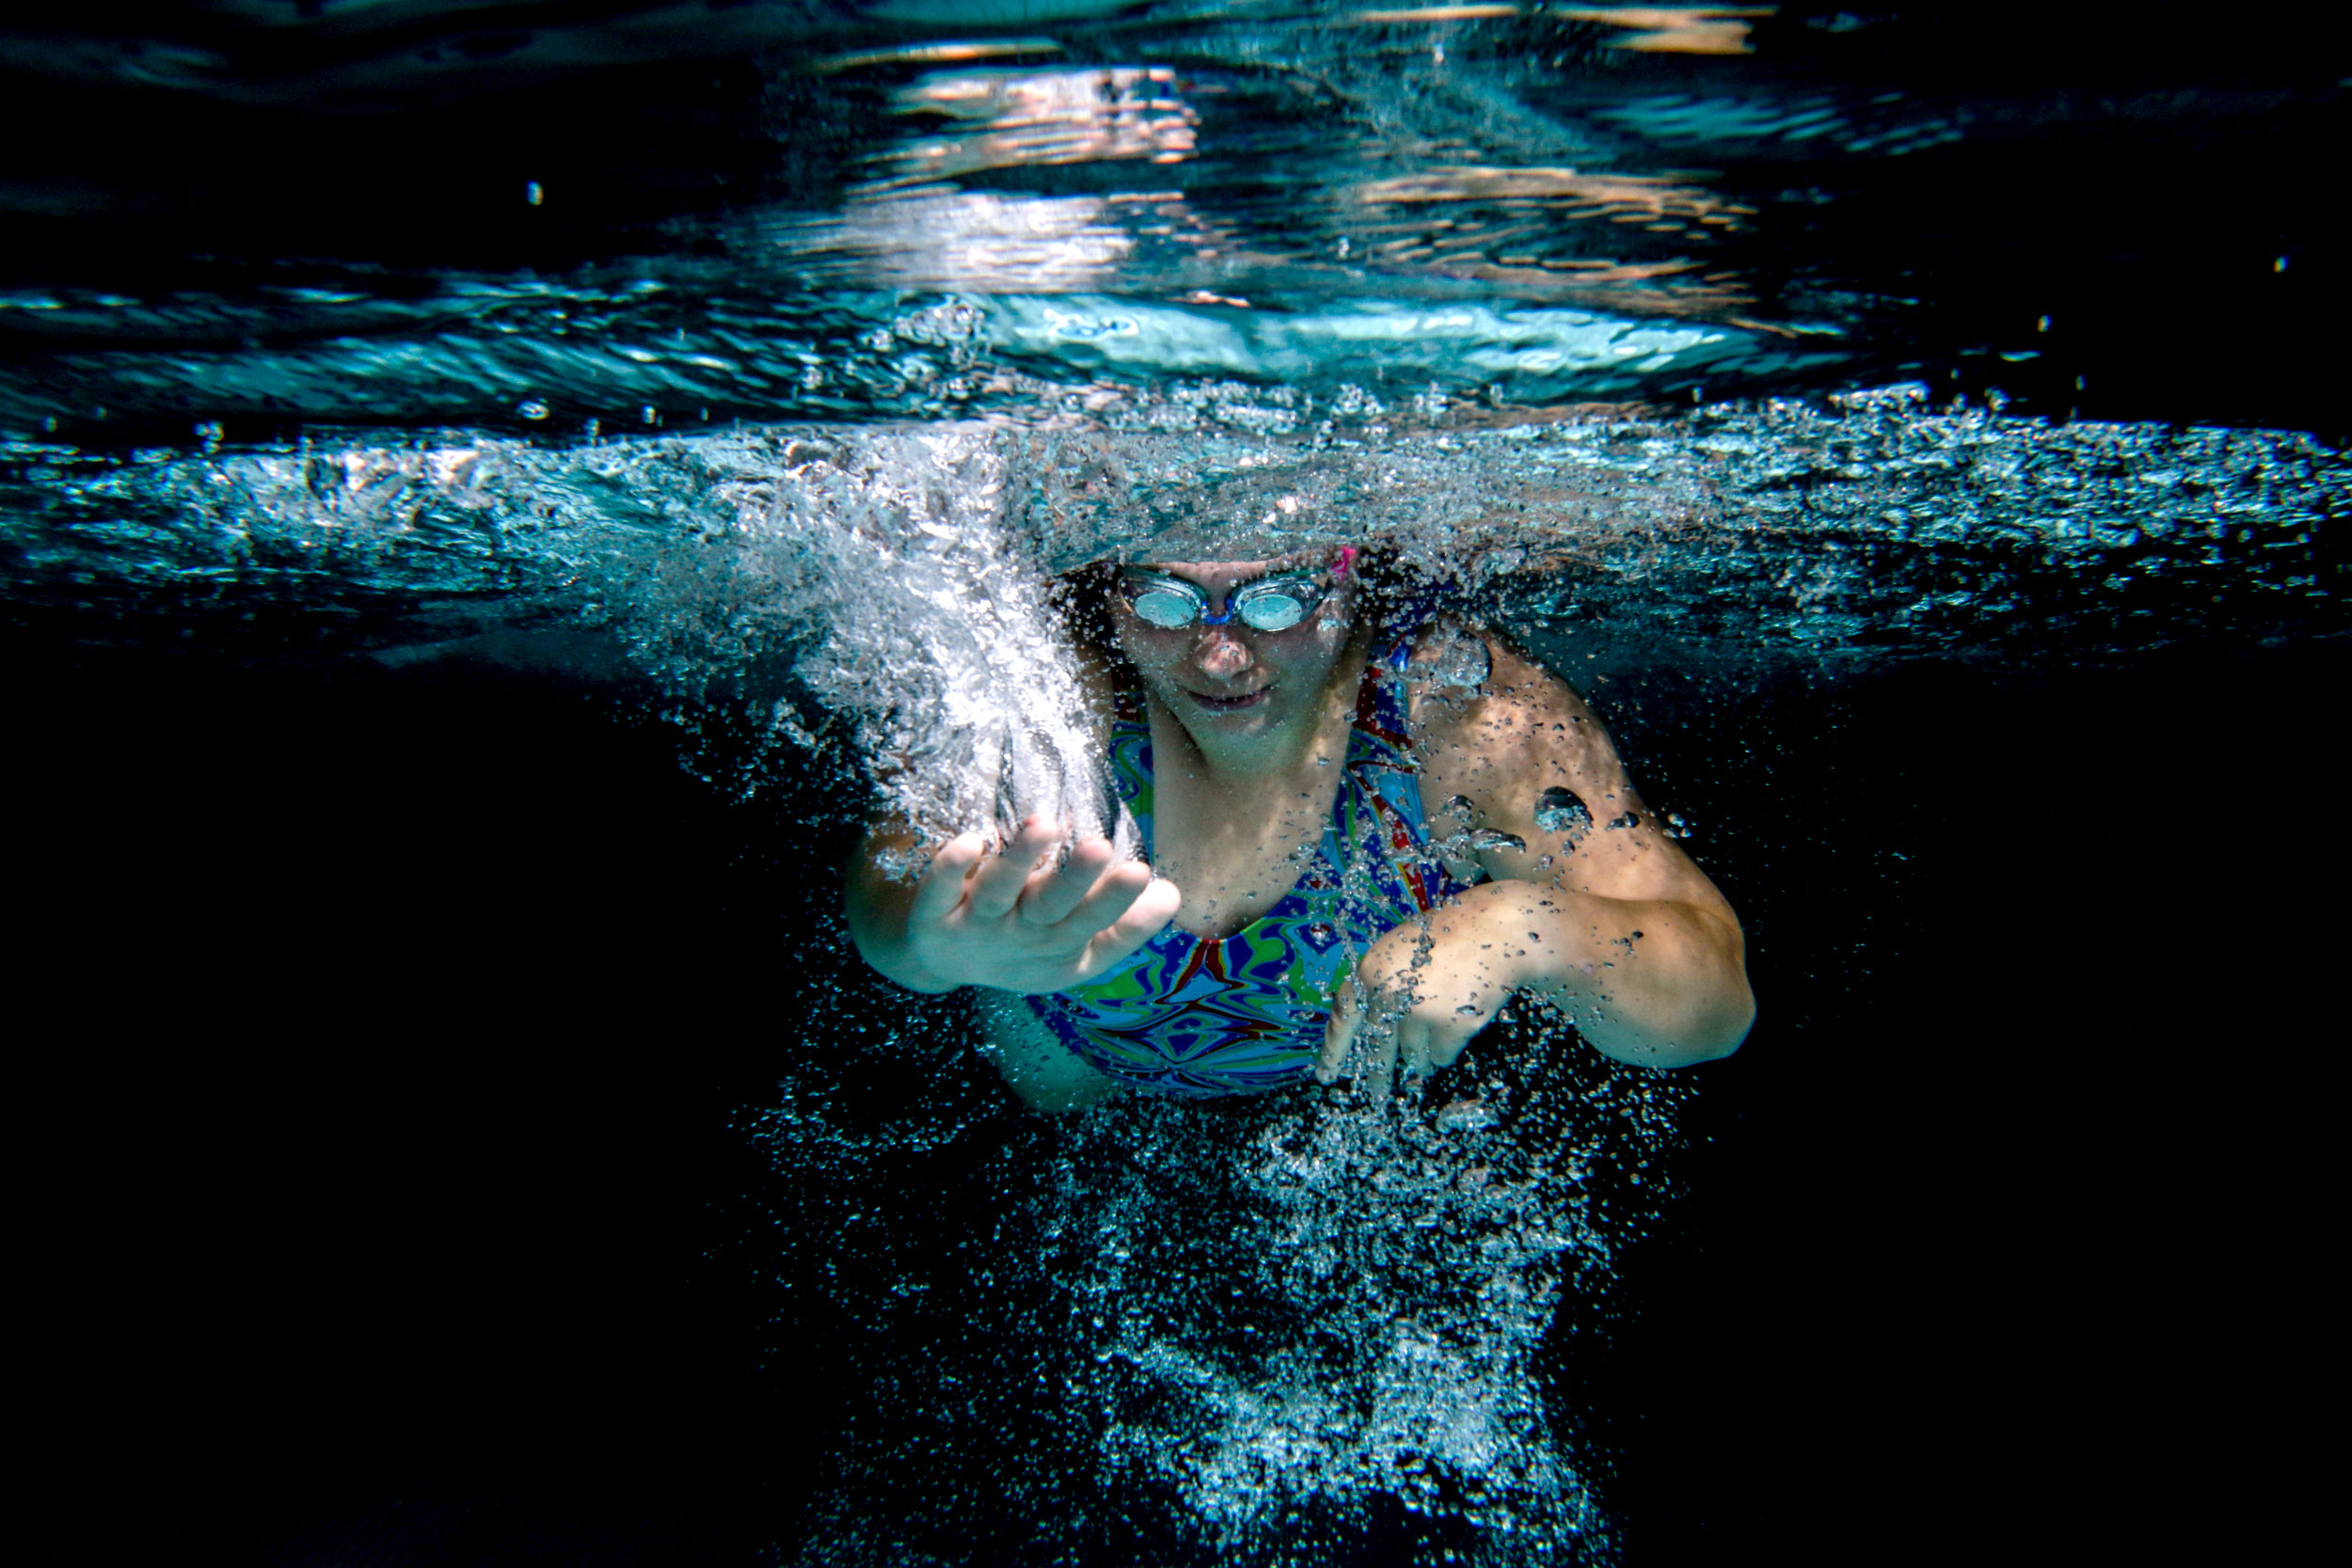 Special Olympic athlete on the Upper Valley Hawks team Rose Kerrigan, of White River Junction, Vt., swims through the water at CCBA's Witherell Recreation Center in Lebanon, N.H., on Friday, Aug. 31, 2018. When it comes to important moments, Kerrigan thinks back to the bronze medal she won in the 100 meters in swimming. The medal was important not because it was her first, but because her family was there to watch.